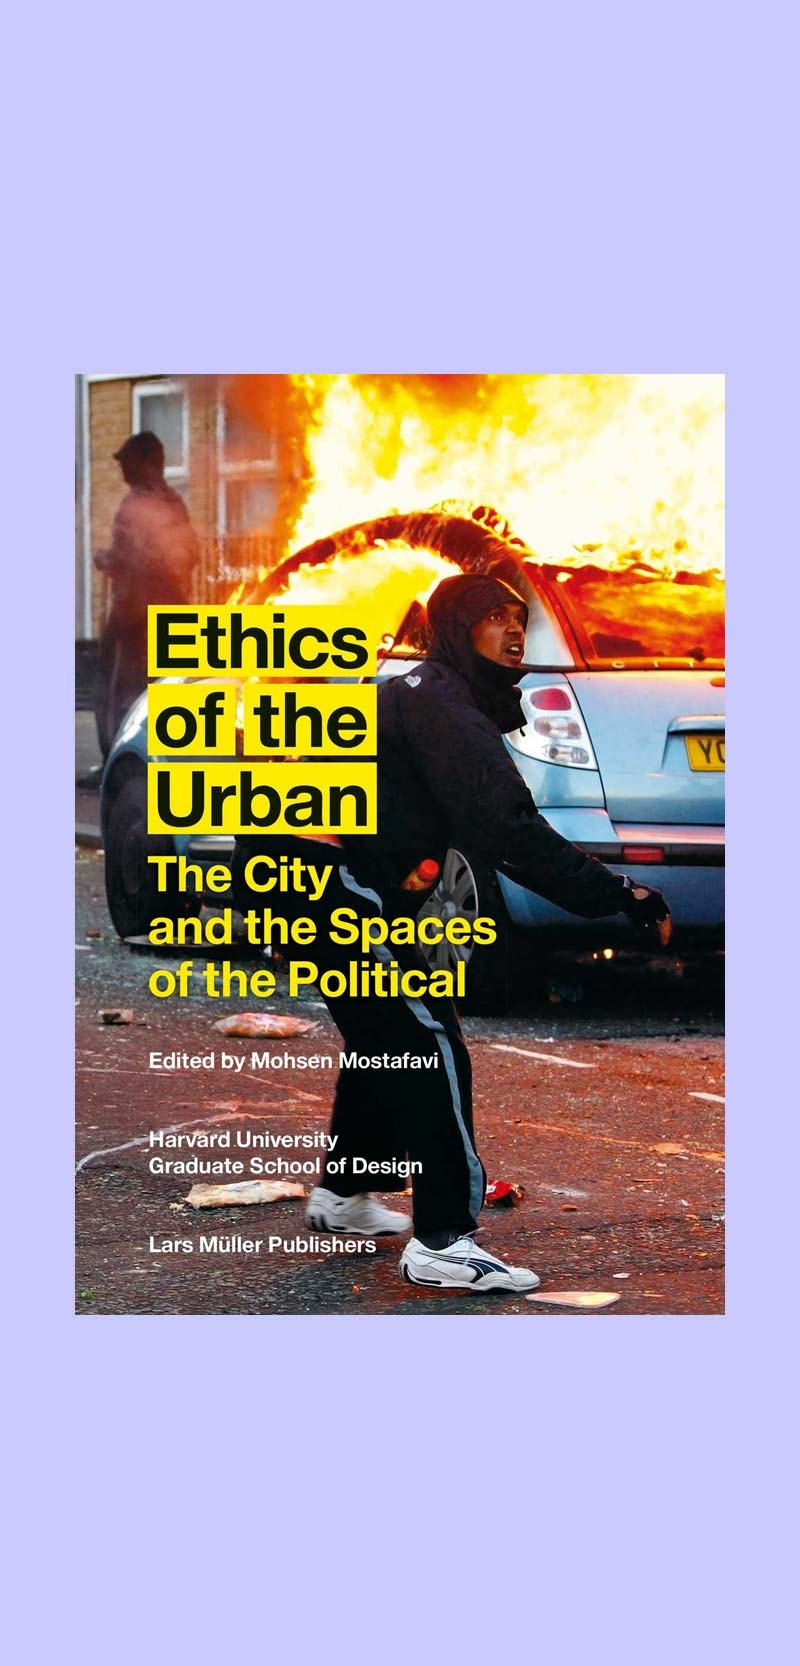 Ethics of the Urban: The City and the Spaces of the Political